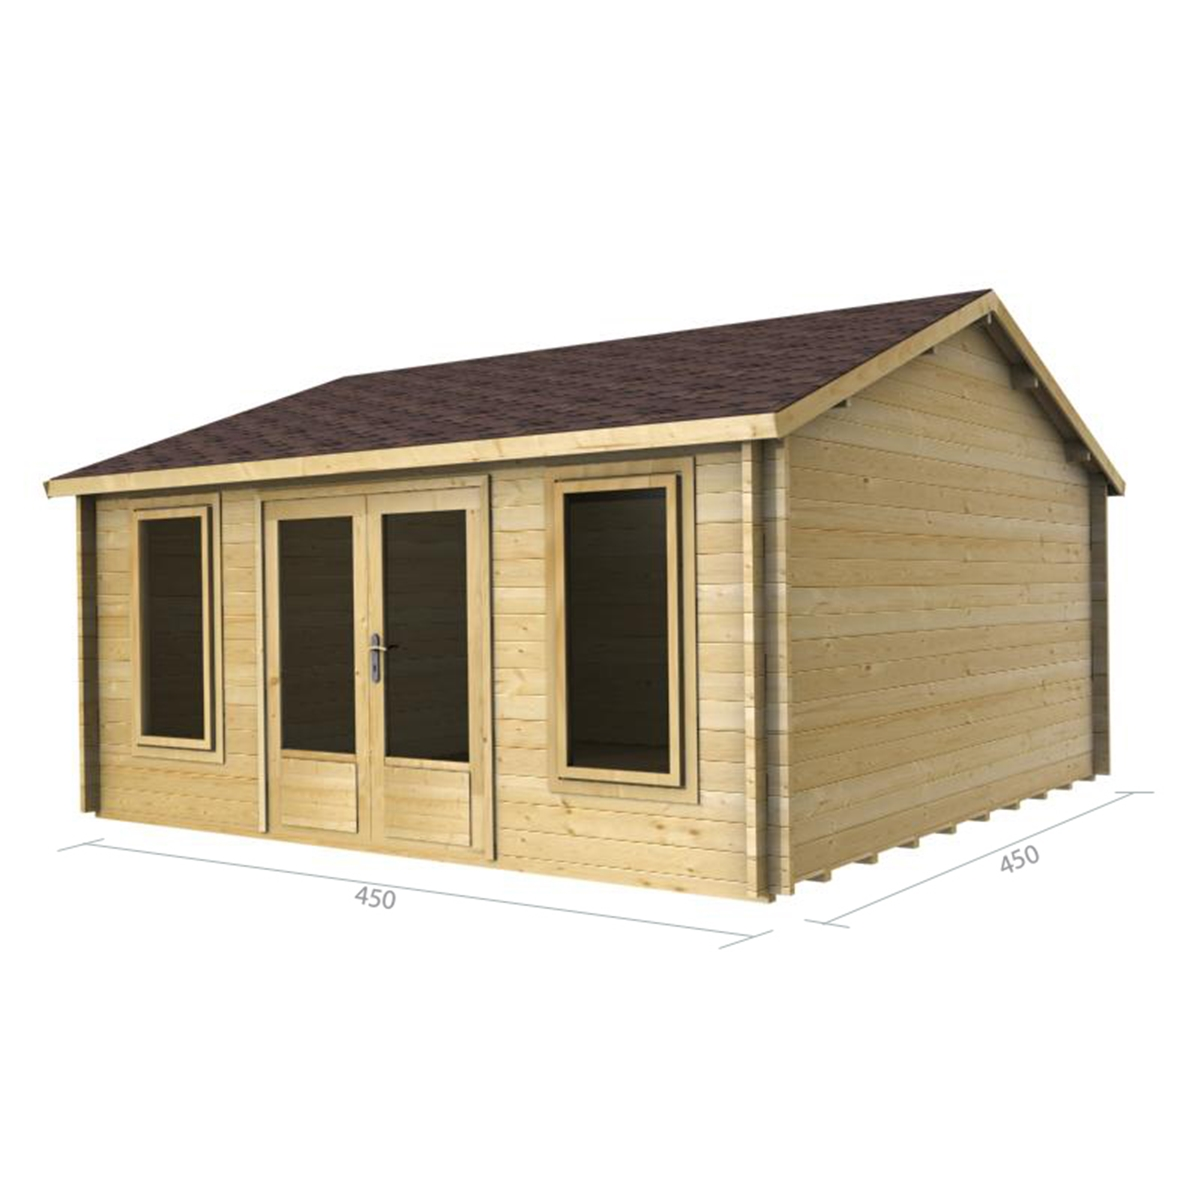 Superb img of Discovery Premier Cabins : 4.5m x 4.5m Deluxe Reverse Apex Log Cabin  with #9A7731 color and 1200x1200 pixels